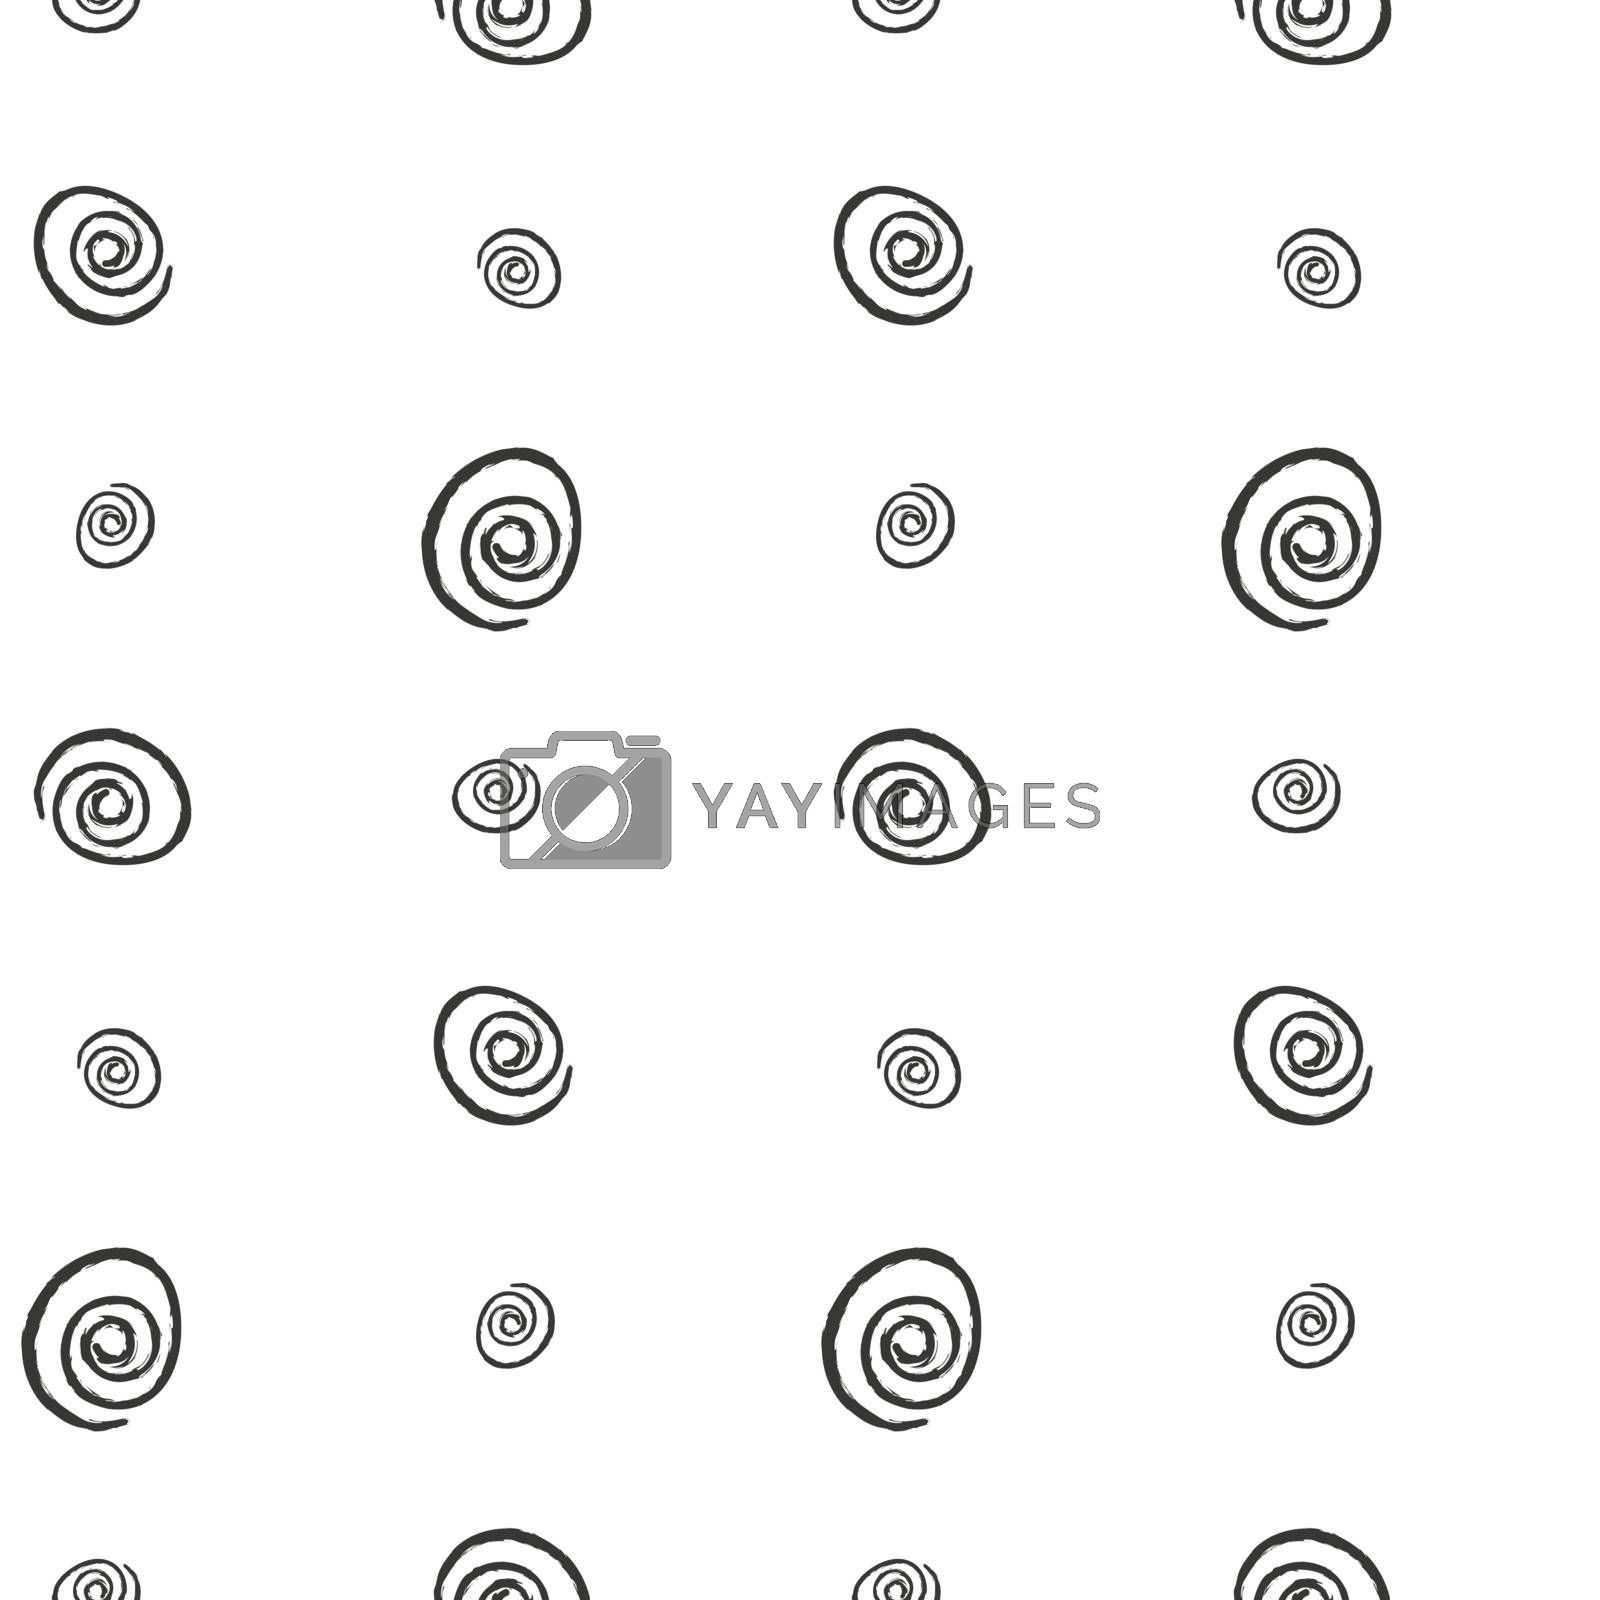 Spiral imitation ink hand drawn on a white background seamless pattern